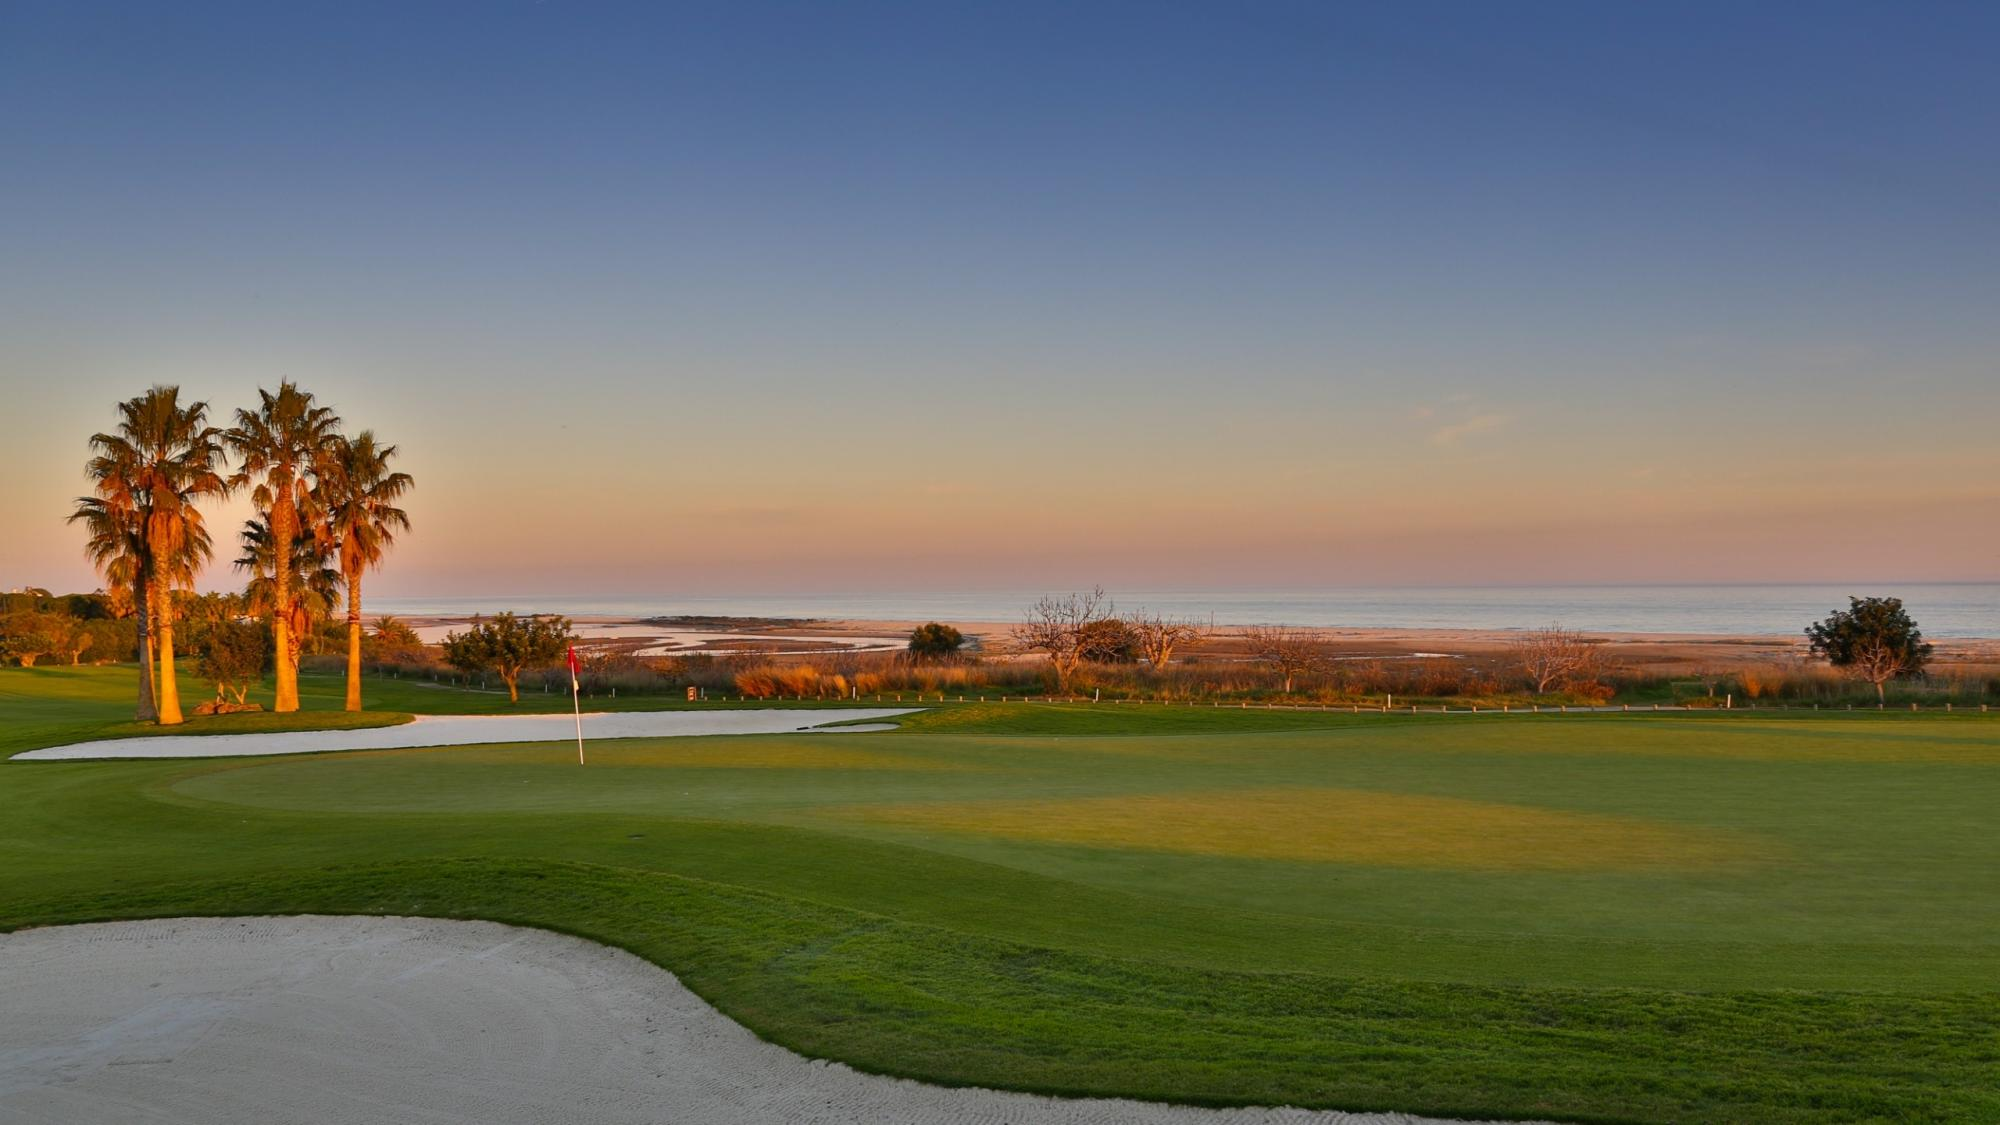 The Quinta da Ria Golf Course's scenic golf course in vibrant Algarve.